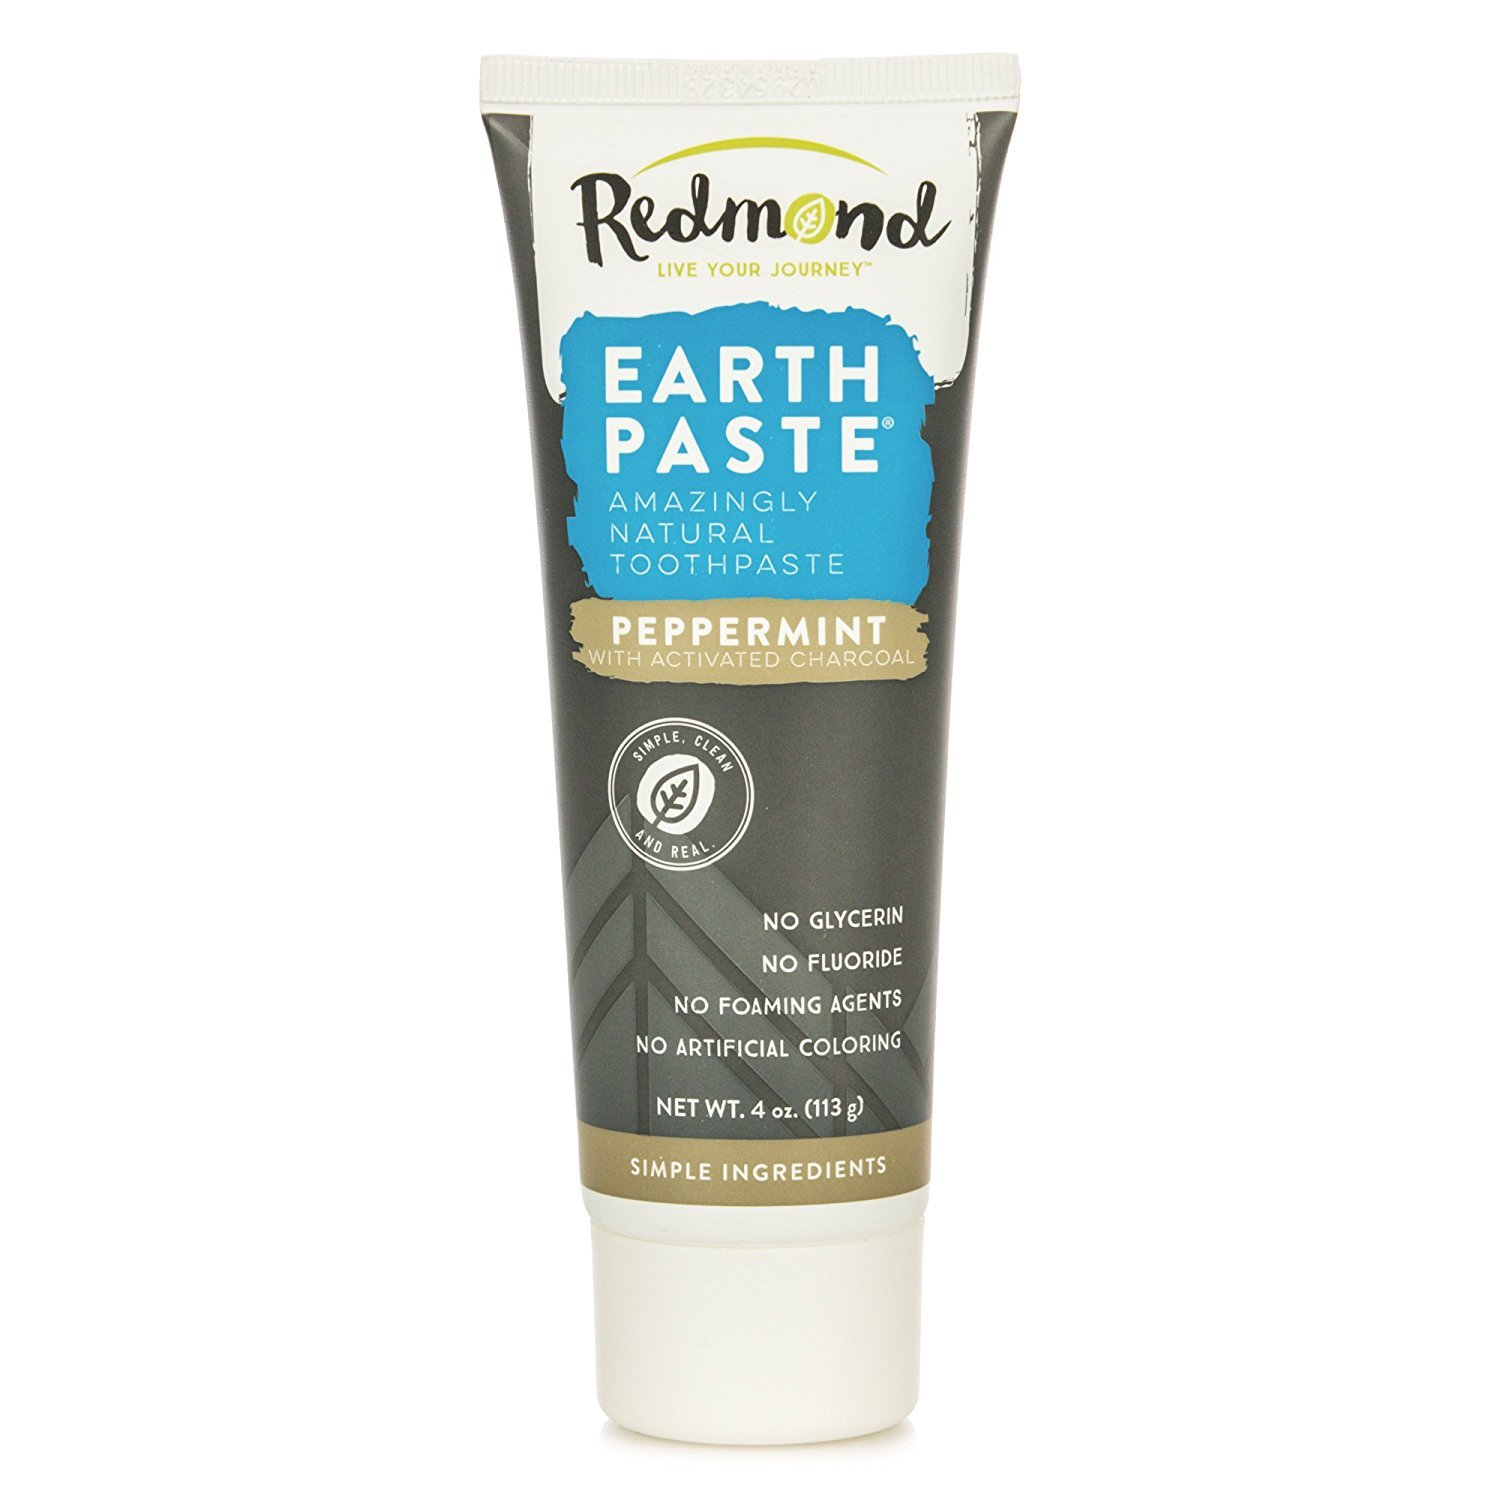 Redmond Earthpaste - Natural Non-Fluoride Toothpaste, Peppermint Charcoal, 4 Ounce Tube (1 Pack)